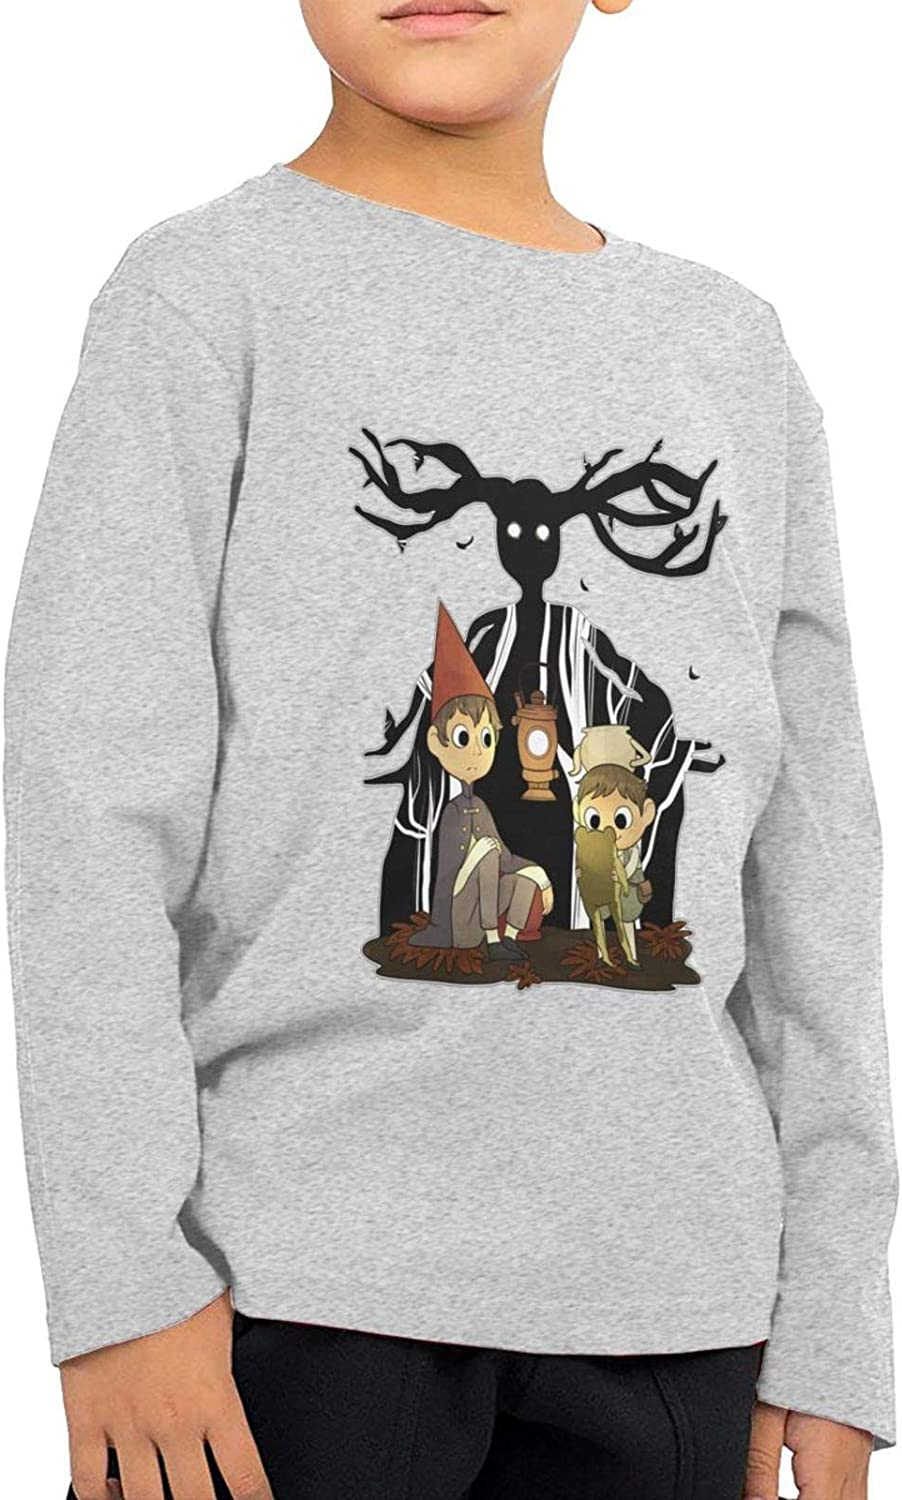 Children's Over The Garden Wall Long Sleeves Novelty Crew Neck Casual T-Shirt Gray